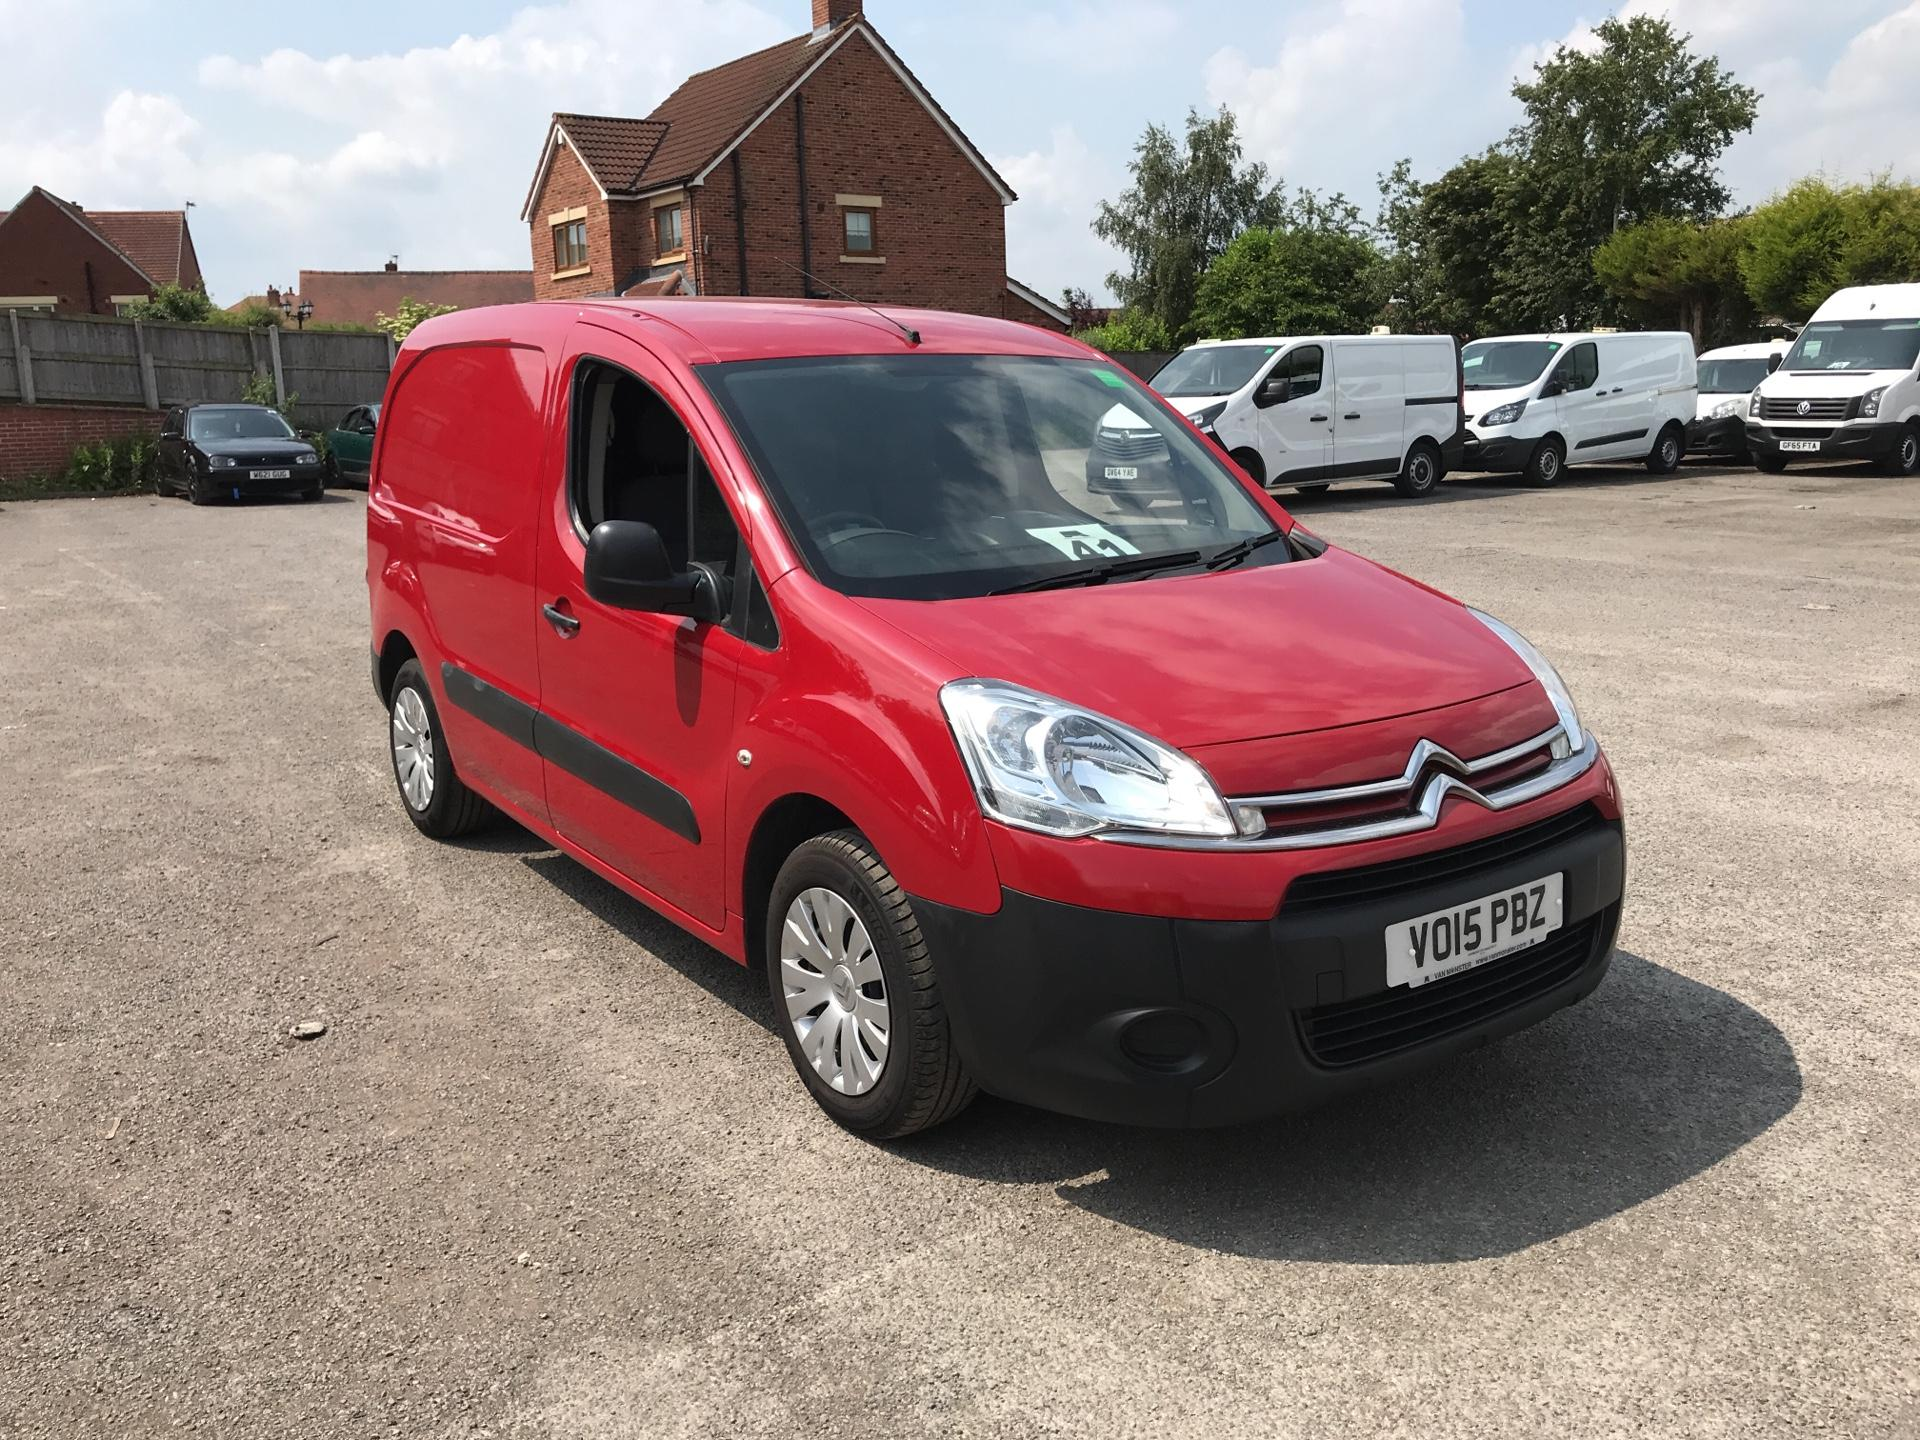 2015 Citroen Berlingo L1 1.6 Hdi 625Kg Enterprise 75Ps (VO15PBZ)